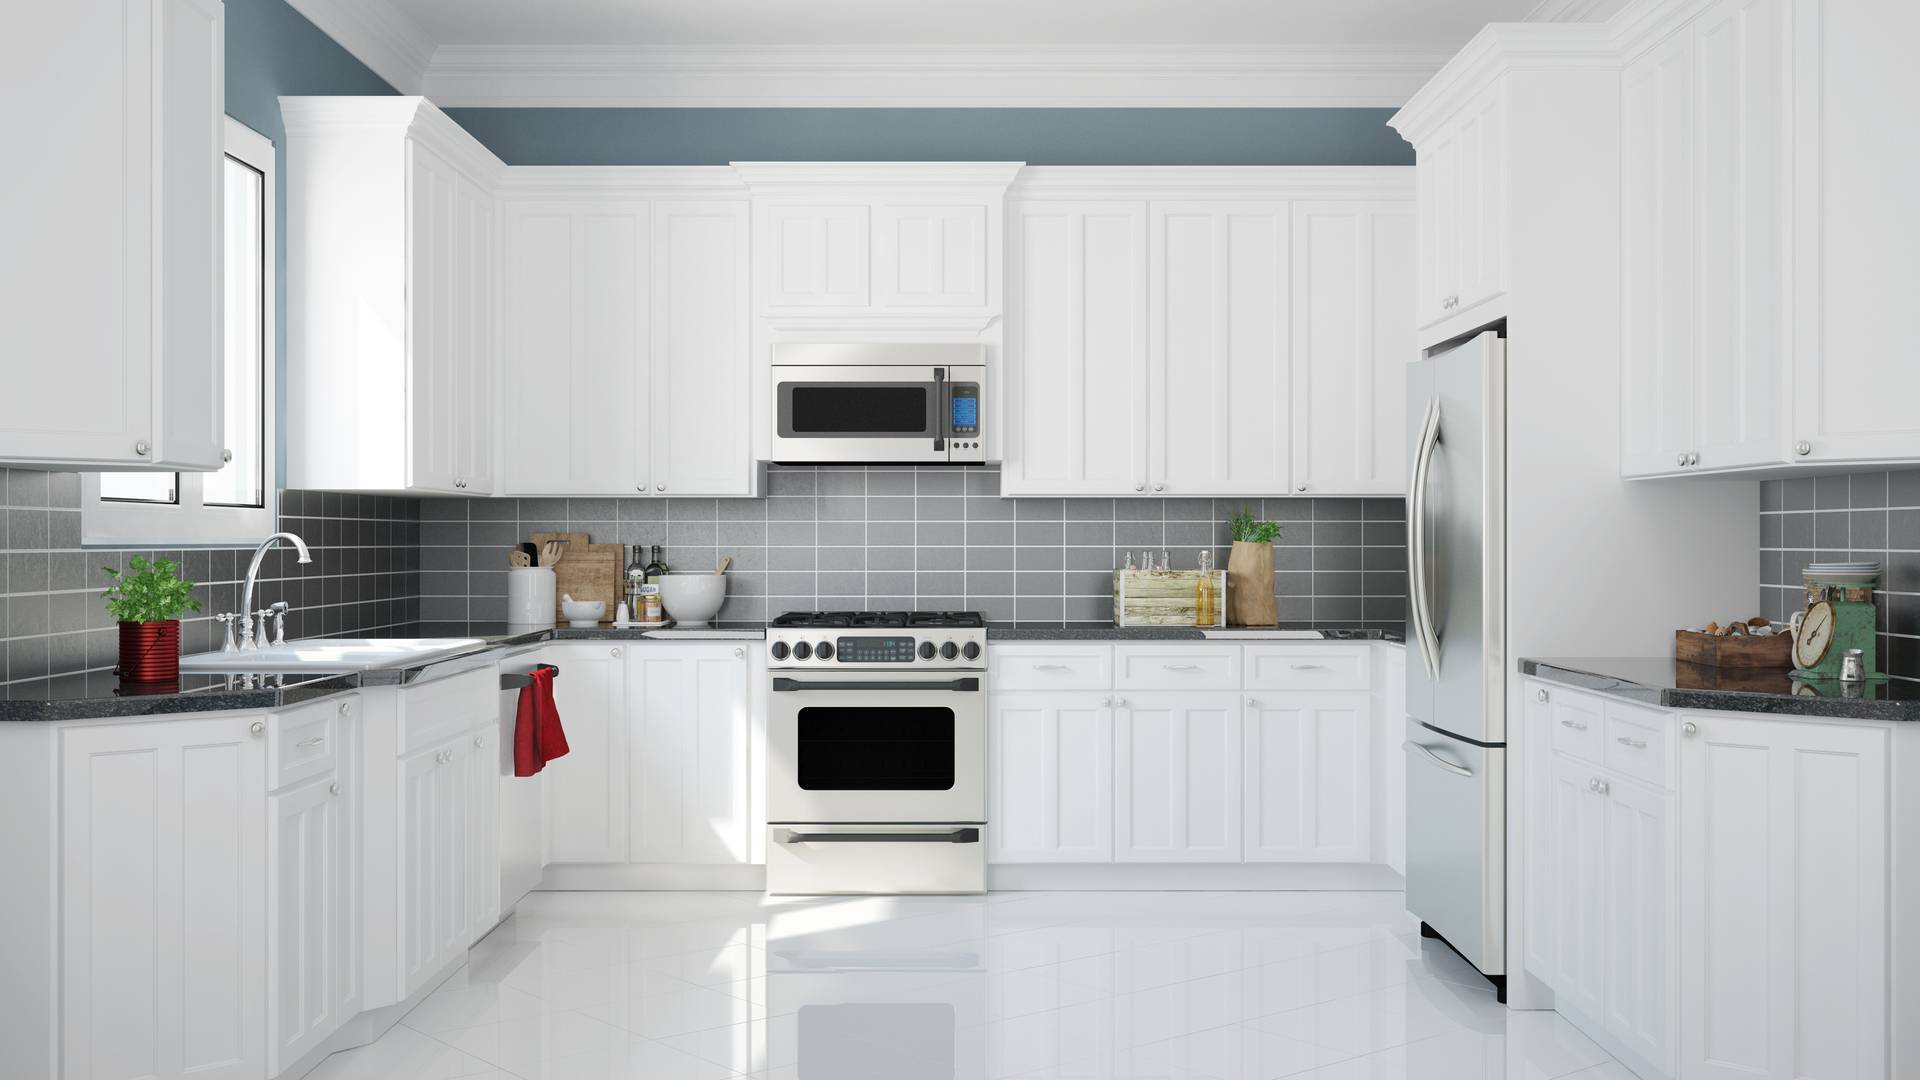 kitchen fitters in Stafford bespke